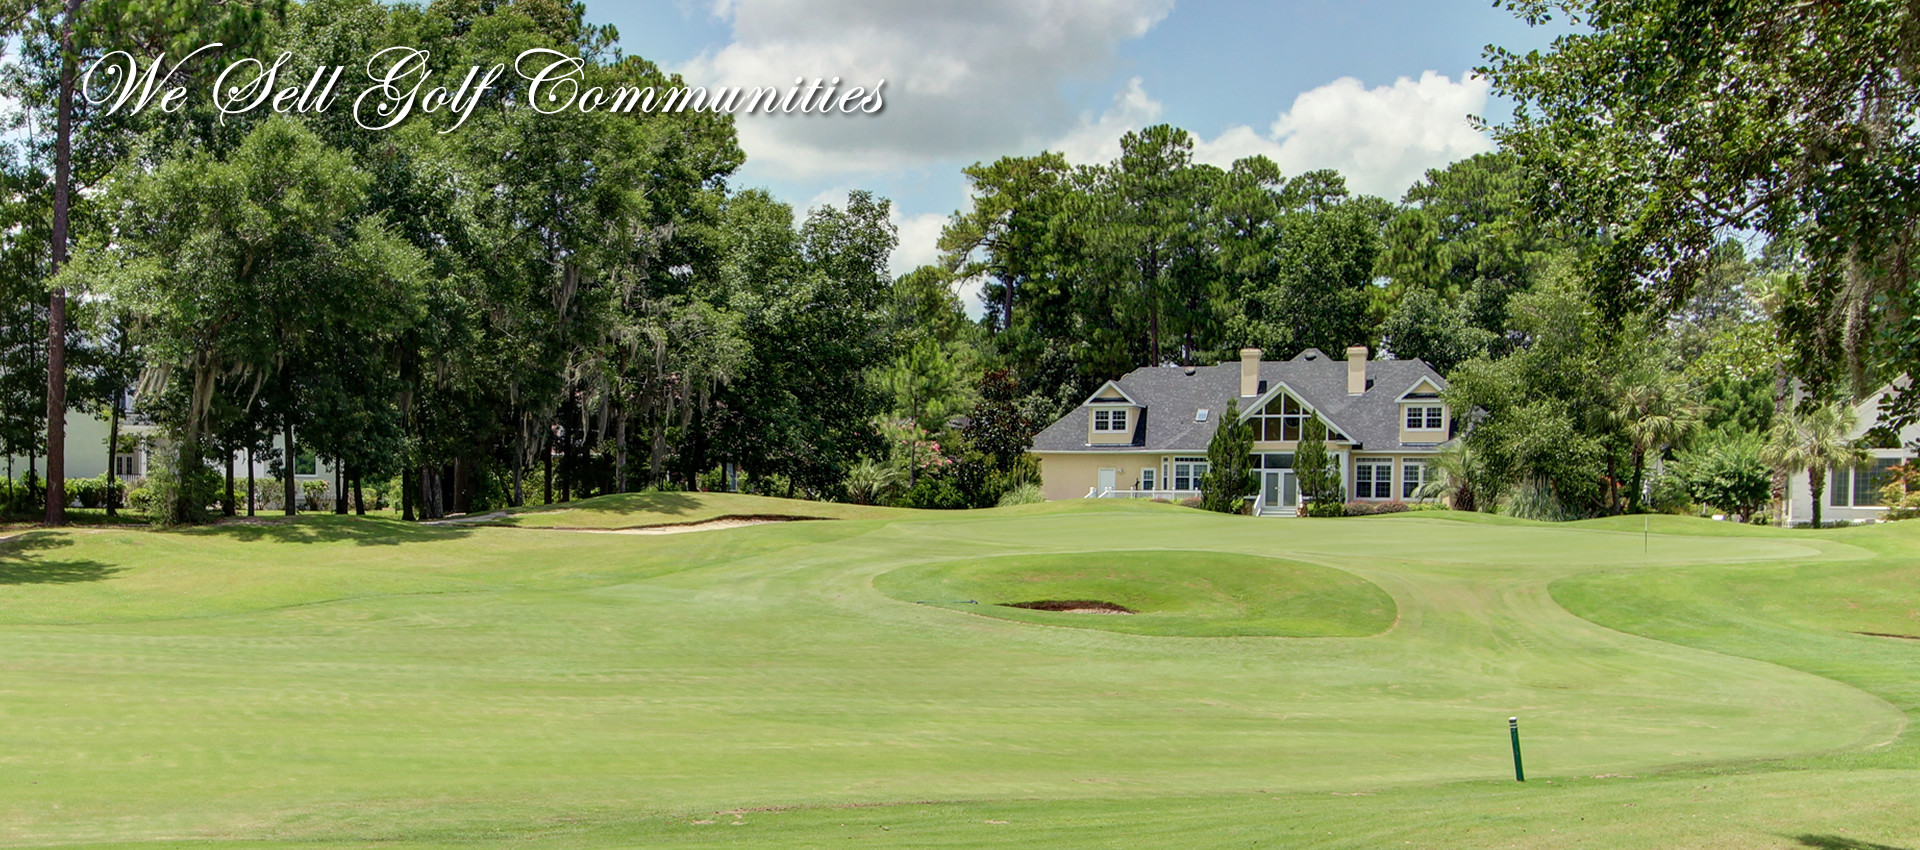 Golf Community Homes for Sale Savannah & Hilton Head